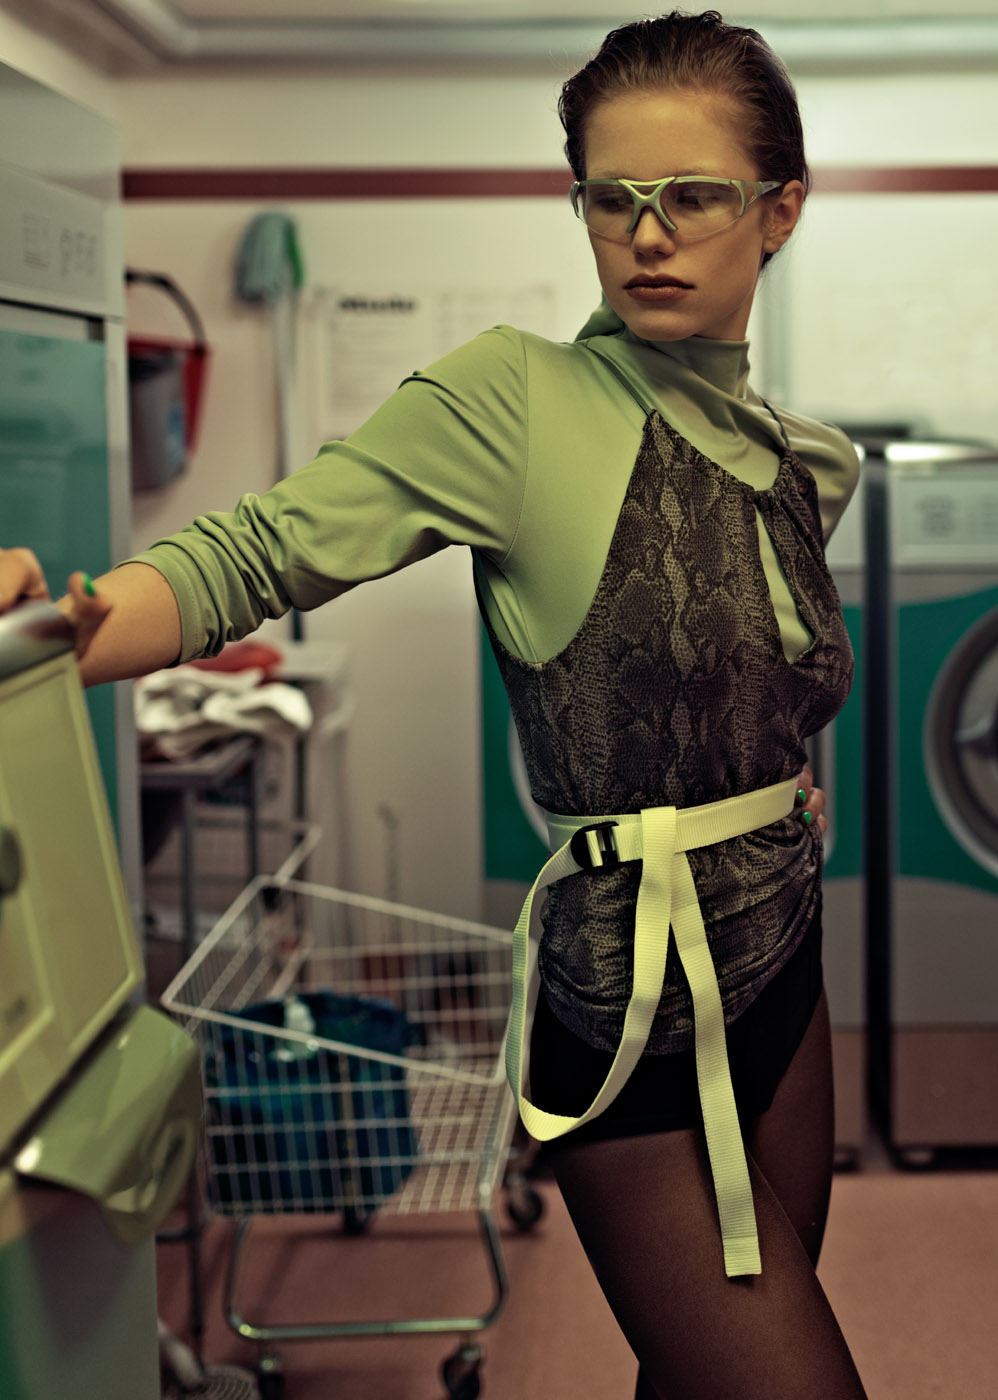 LAUNDRY DAY by Maja Johansson for CHASSEUR MAGAZINE (2)